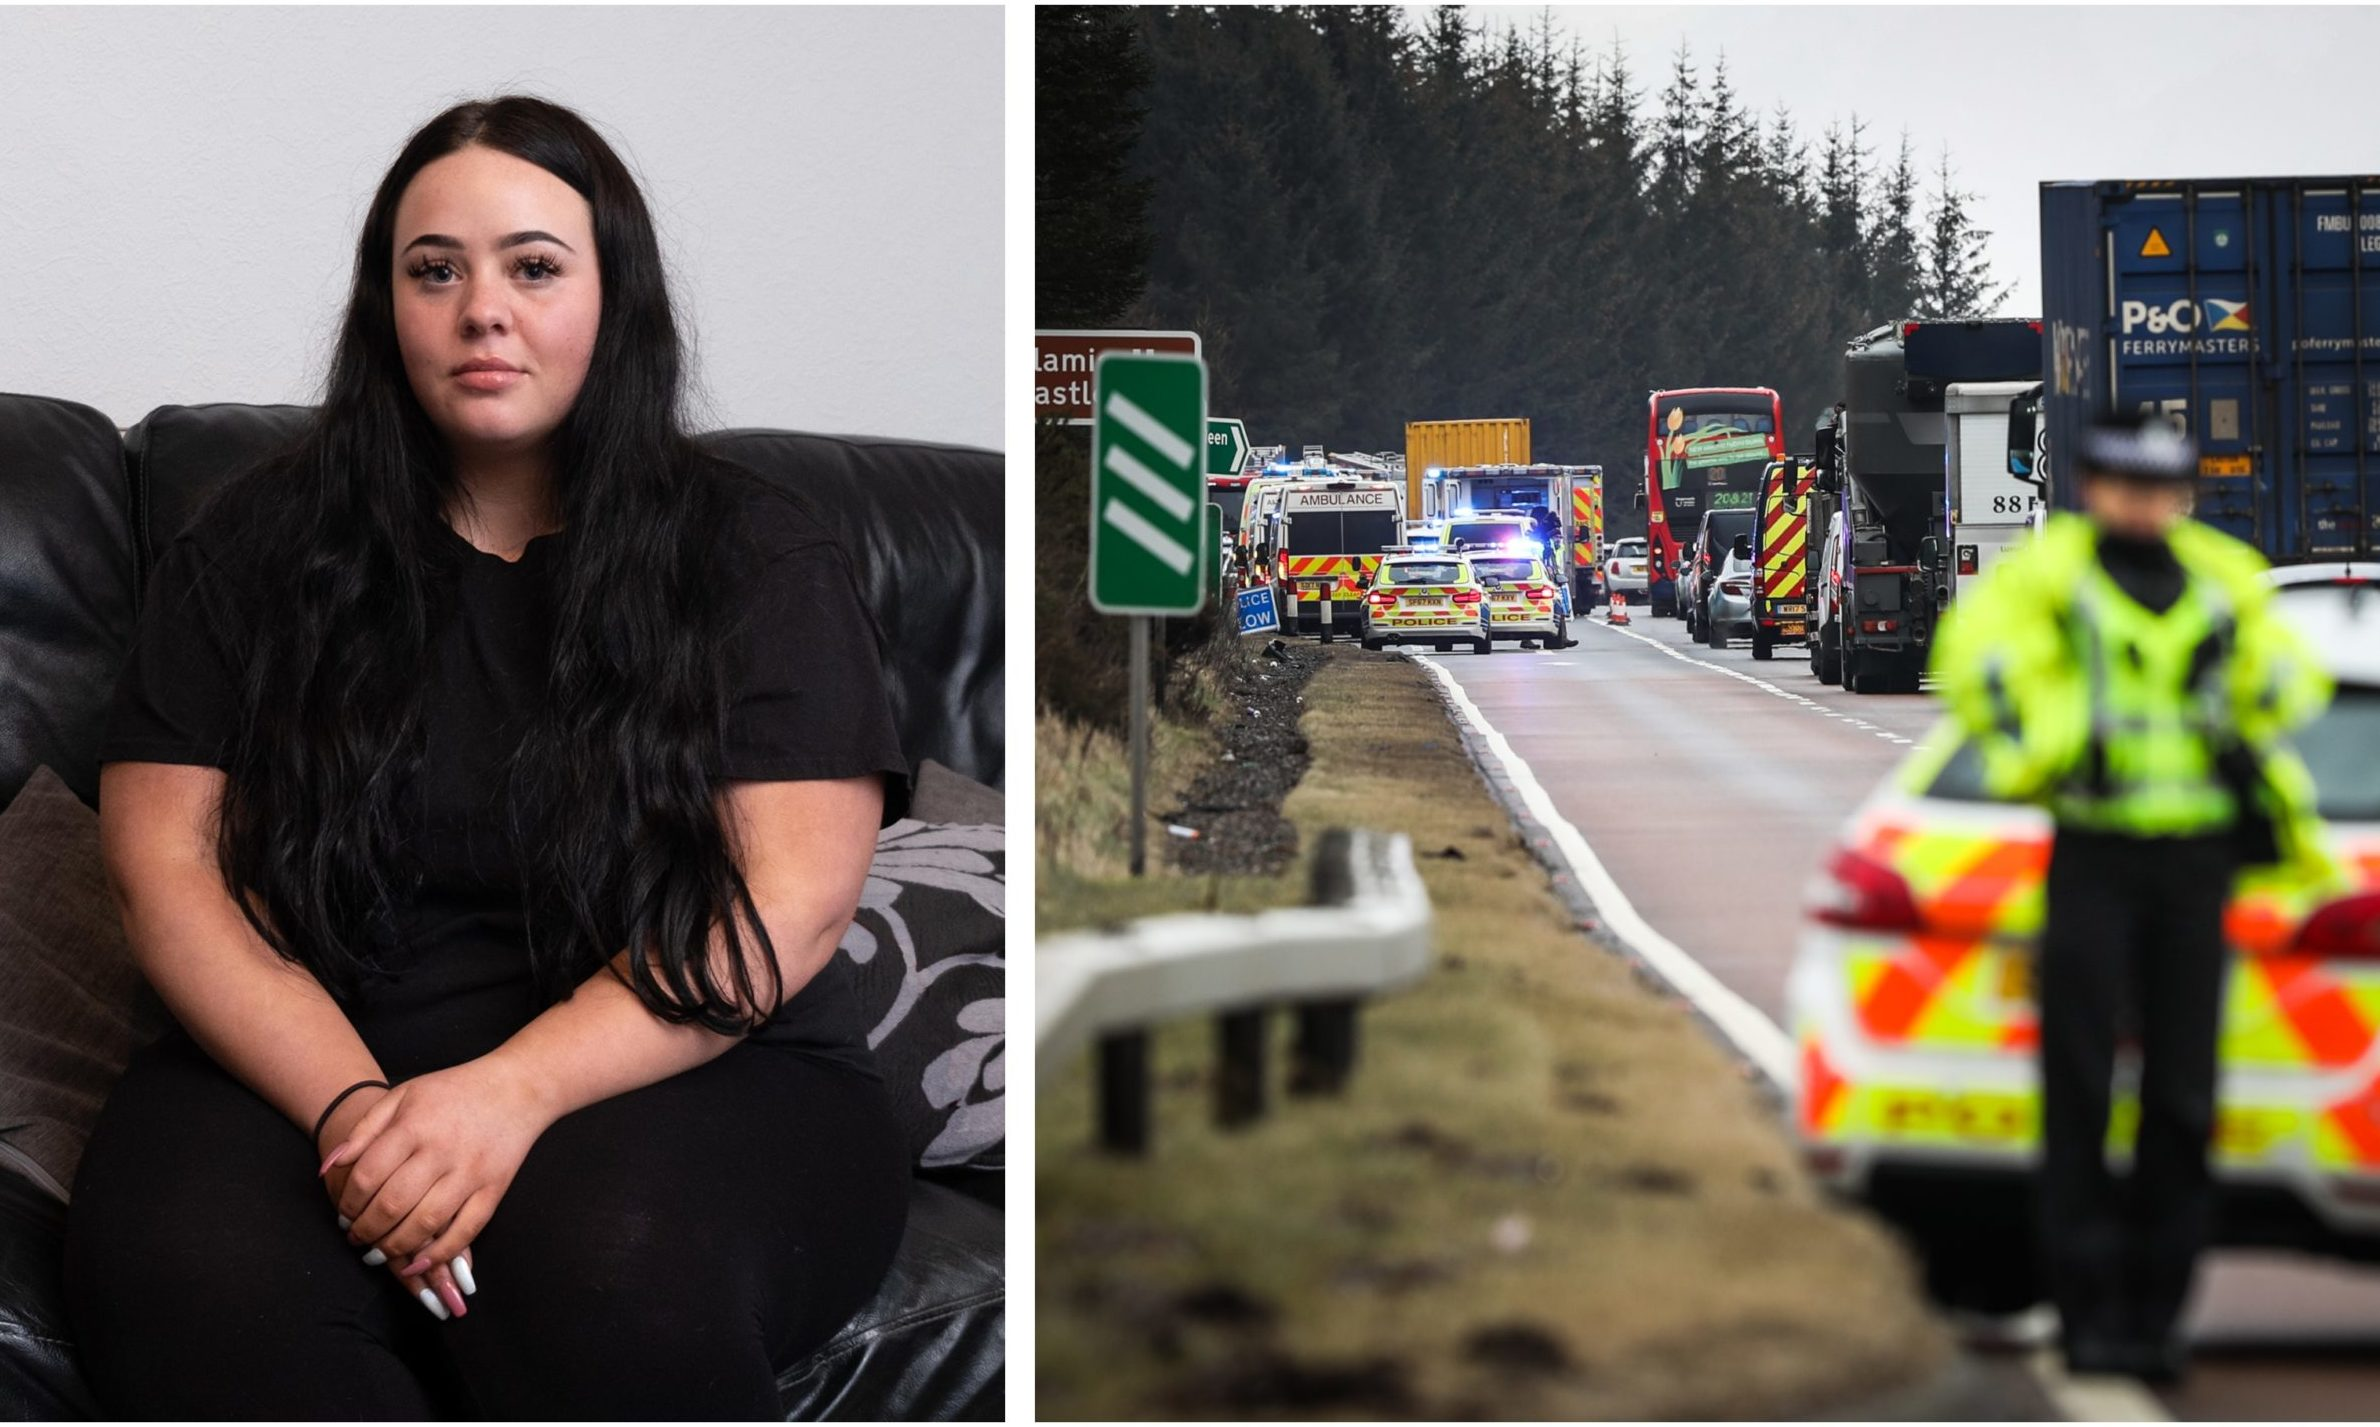 Danielle Ashley was on the bus travelling on the A90.